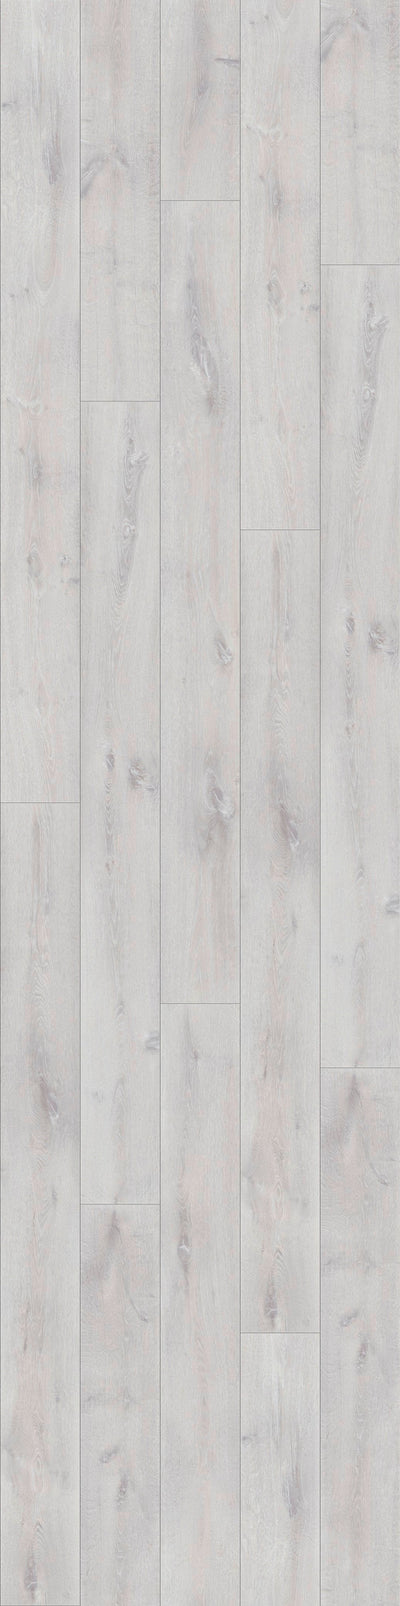 Pergo Winter Oak Long Plank